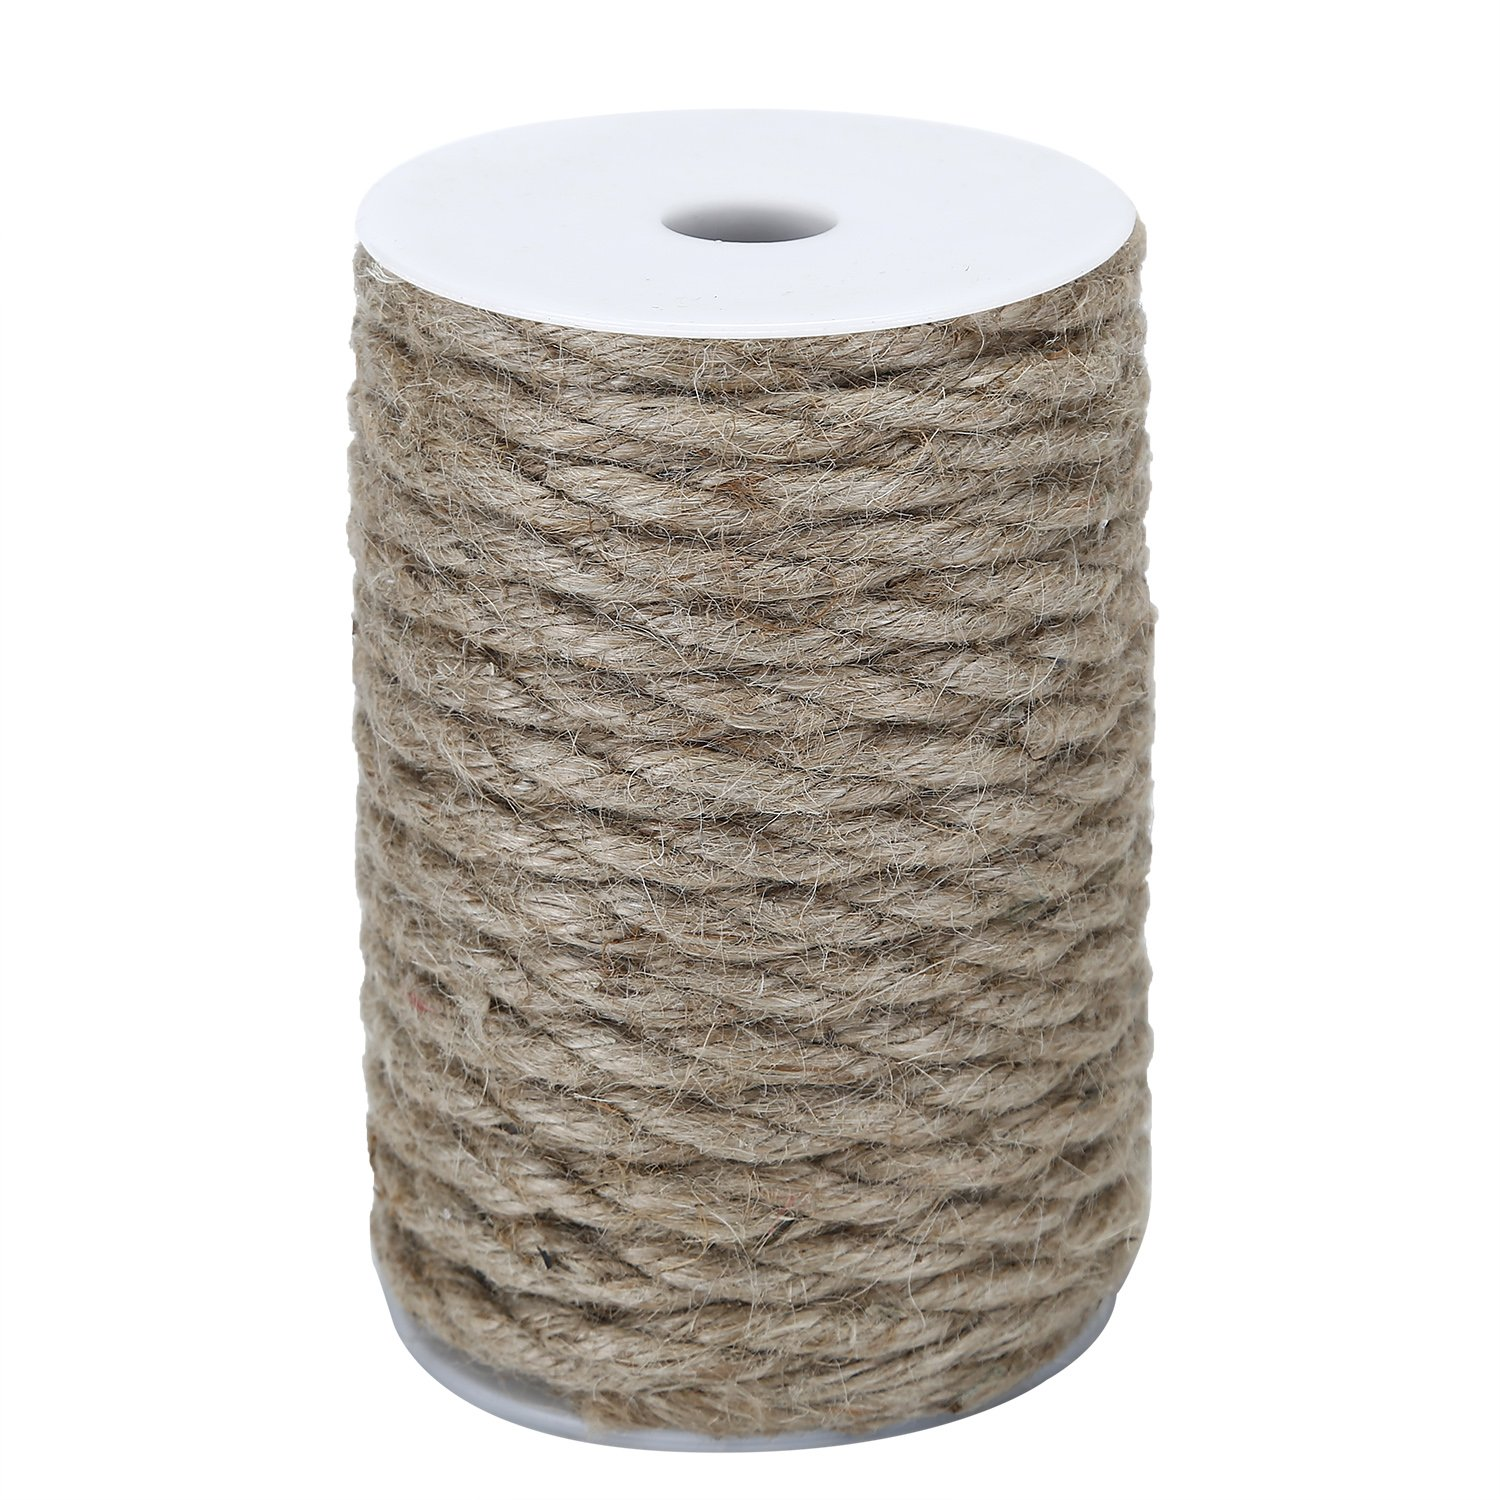 ZoraSelena Jute Rope 8mm 50 Feet Jute Twine String-Natural Hemp Twine for Crafts DIY Home Decor Jute Heavy Duty 3ply Brown